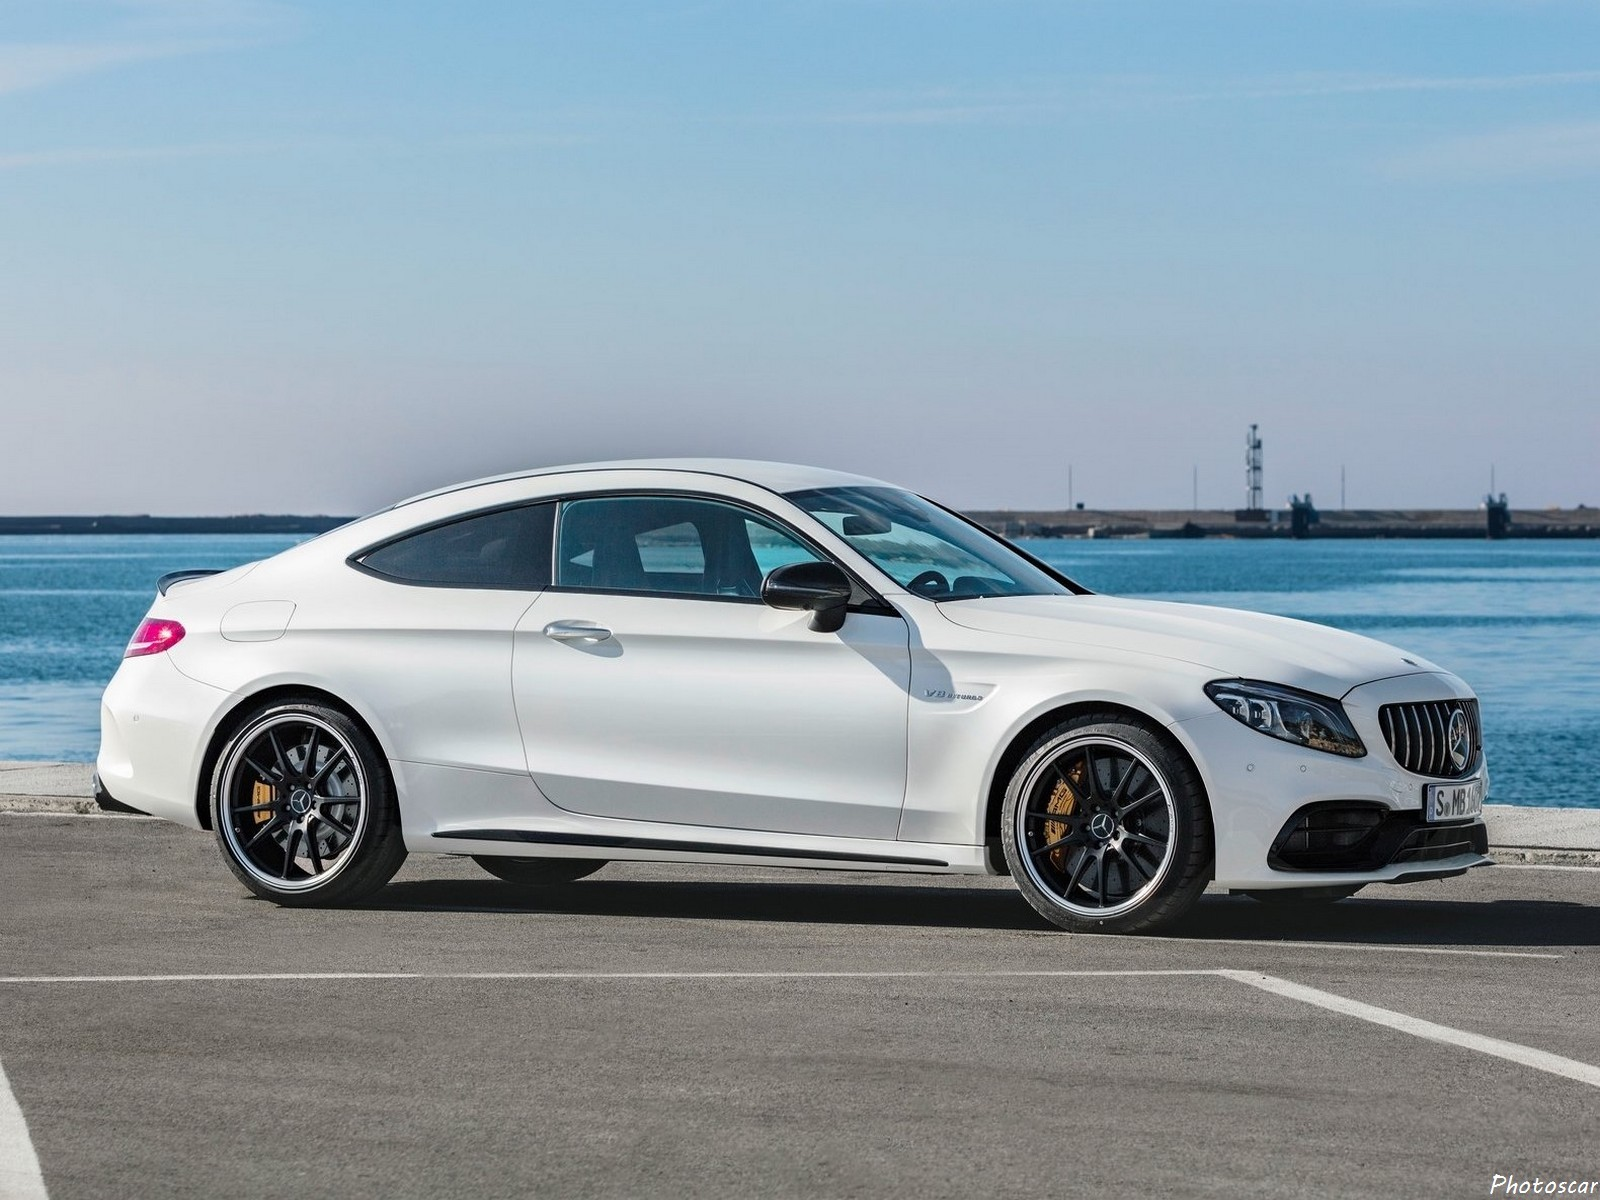 Mercedes-AMG C63 S Coupe 2019